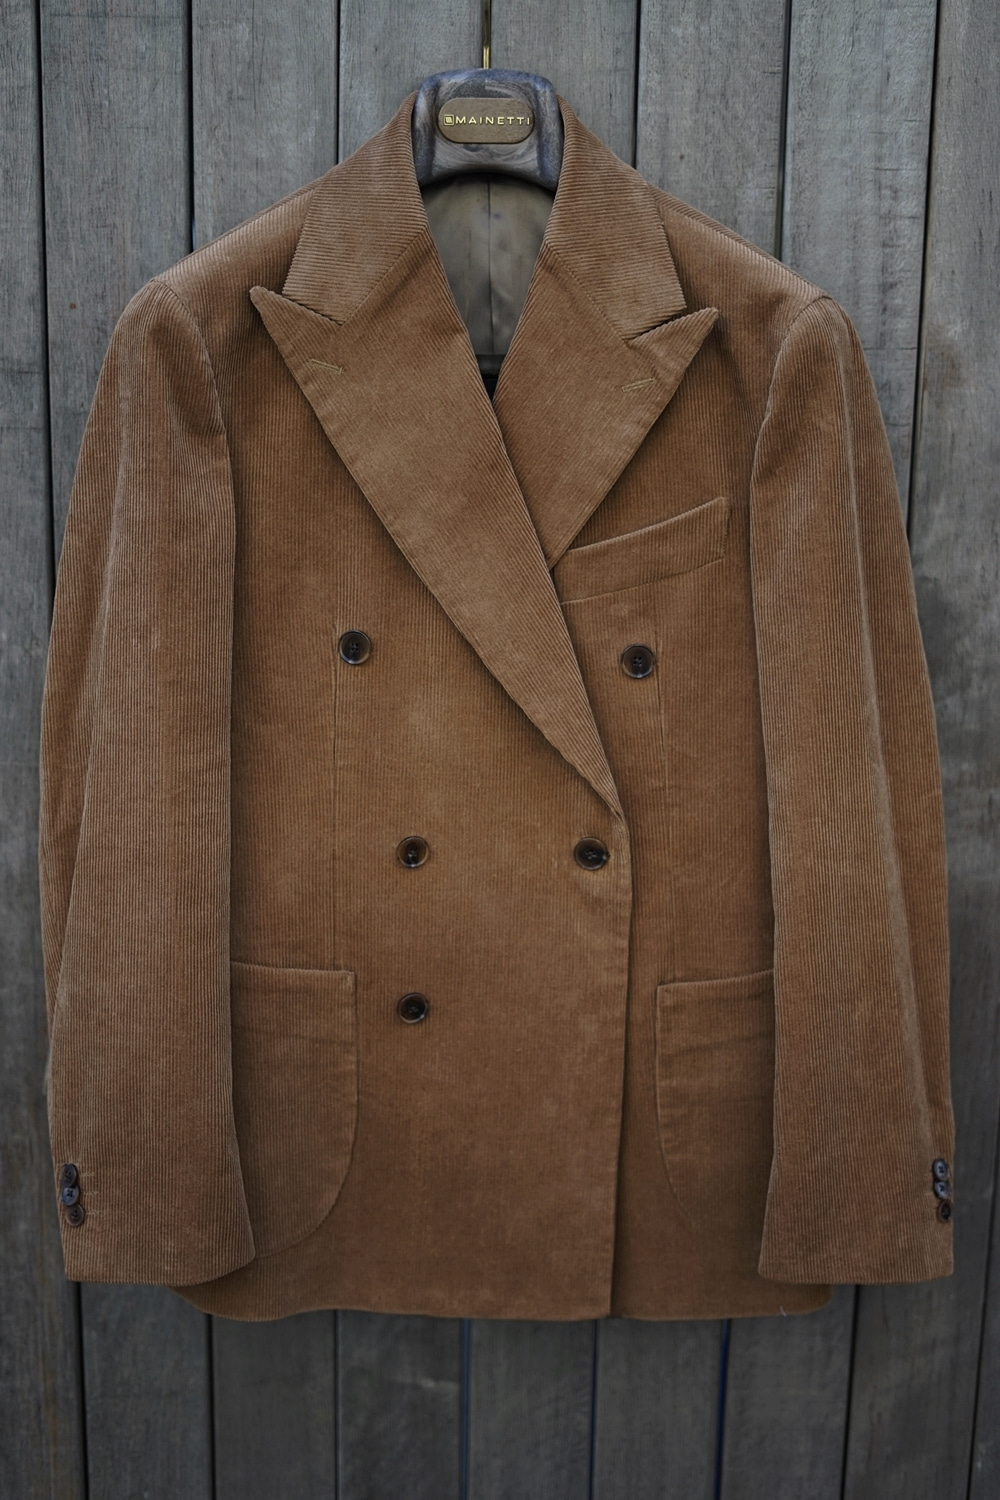 Double corduroy jacket camelCOMPLETO(꼼플레토)